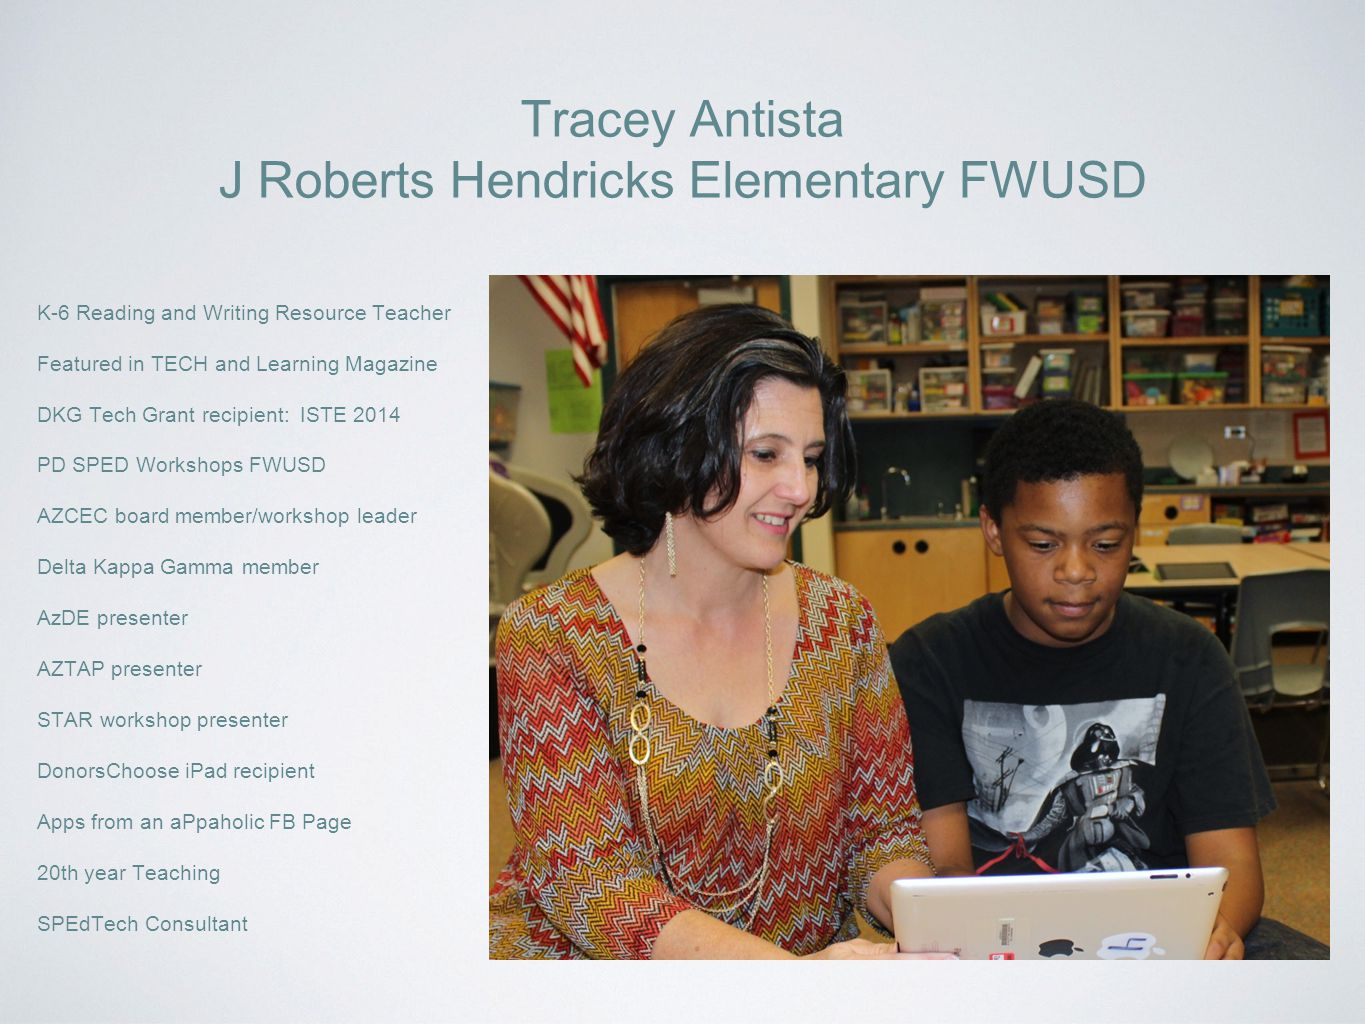 J Roberts Hendricks Elementary FWUSD K-6 Reading and Writing Resource Teacher Featured in TECH and Learning Magazine DKG Tech Grant recipient: ISTE 2014 PD SPED Workshops FWUSD AZCEC board member/workshop leader Delta Kappa Gamma member AzDE presenter AZTAP presenter STAR workshop presenter DonorsChoose iPad recipient Apps from an aPpaholic FB Page 20th year Teaching SPEdTech Consultant